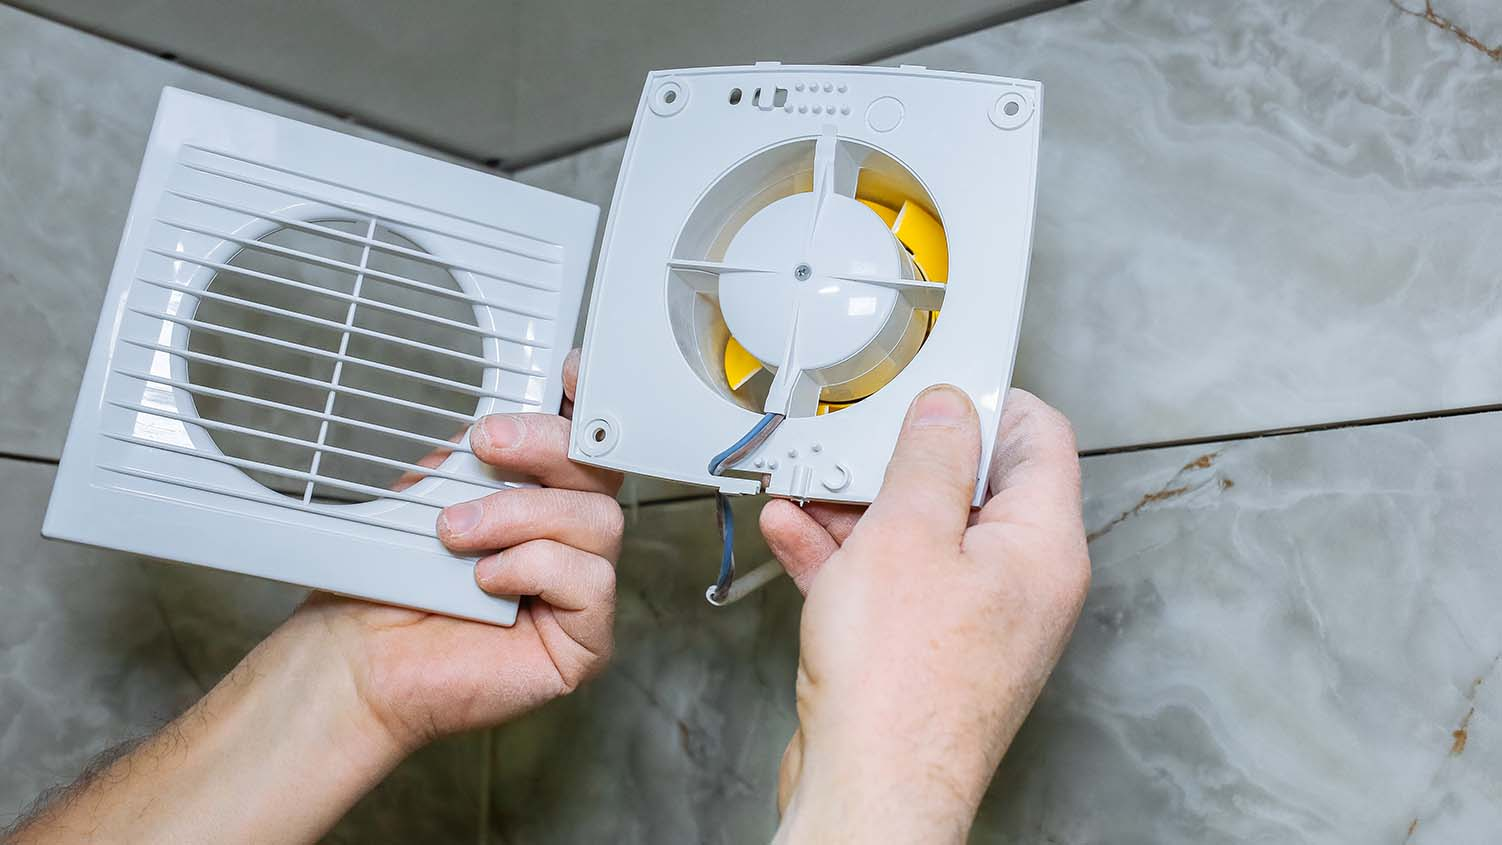 Bathroom Exhaust Fans 101 What You Need To Know To Purchase And Maintain Your Bathroom Fan Zoro Com